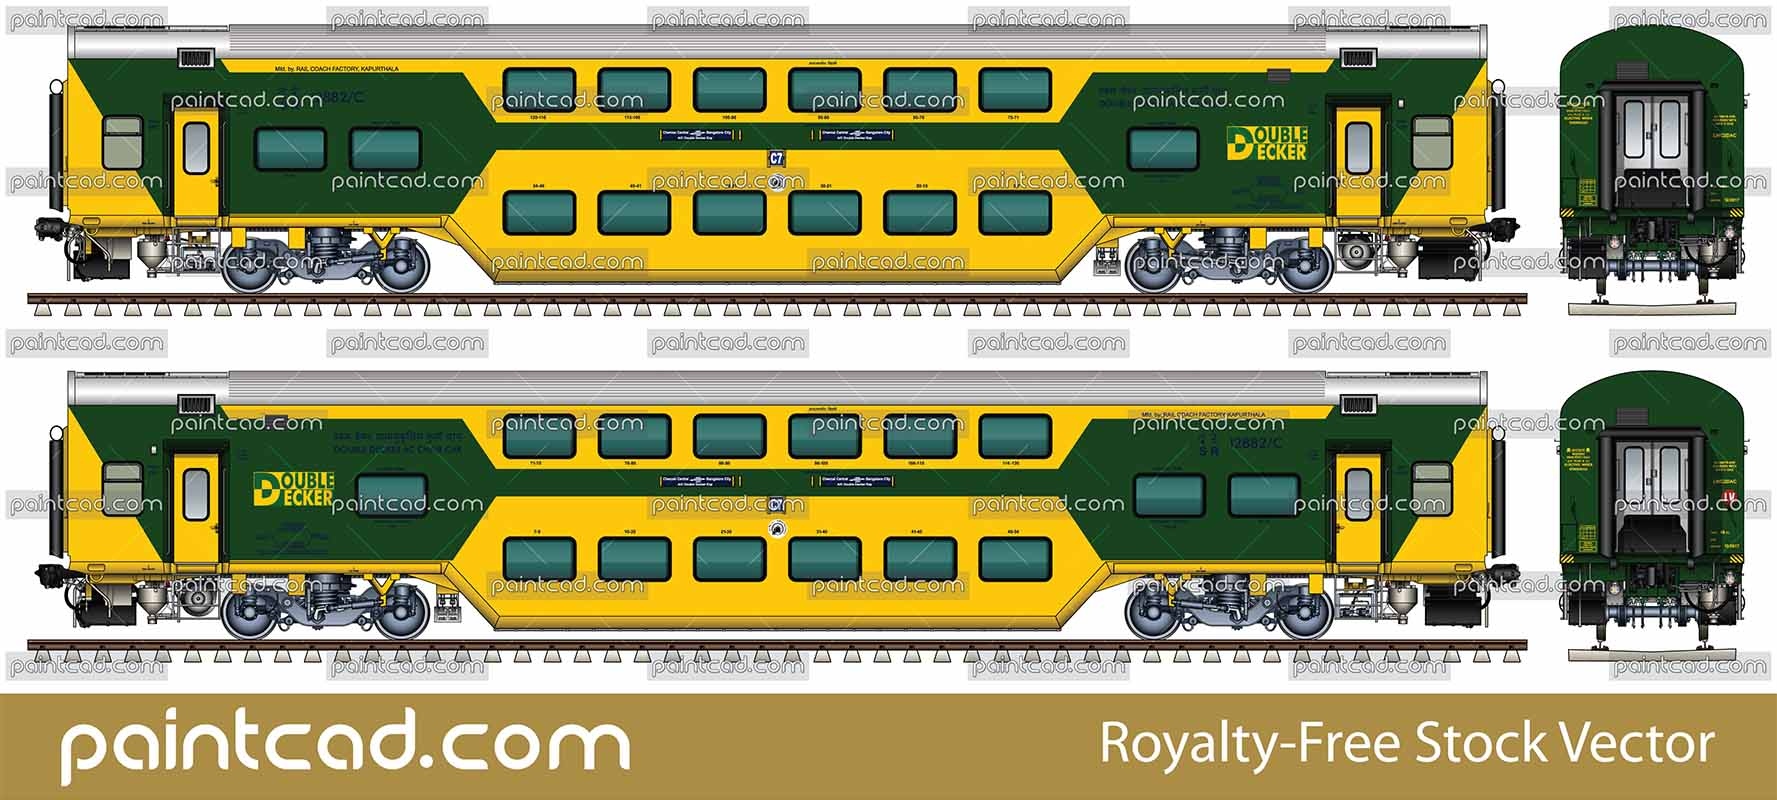 Indian Double Decker AC Chair Car in  yellow-green livery - vector illustration